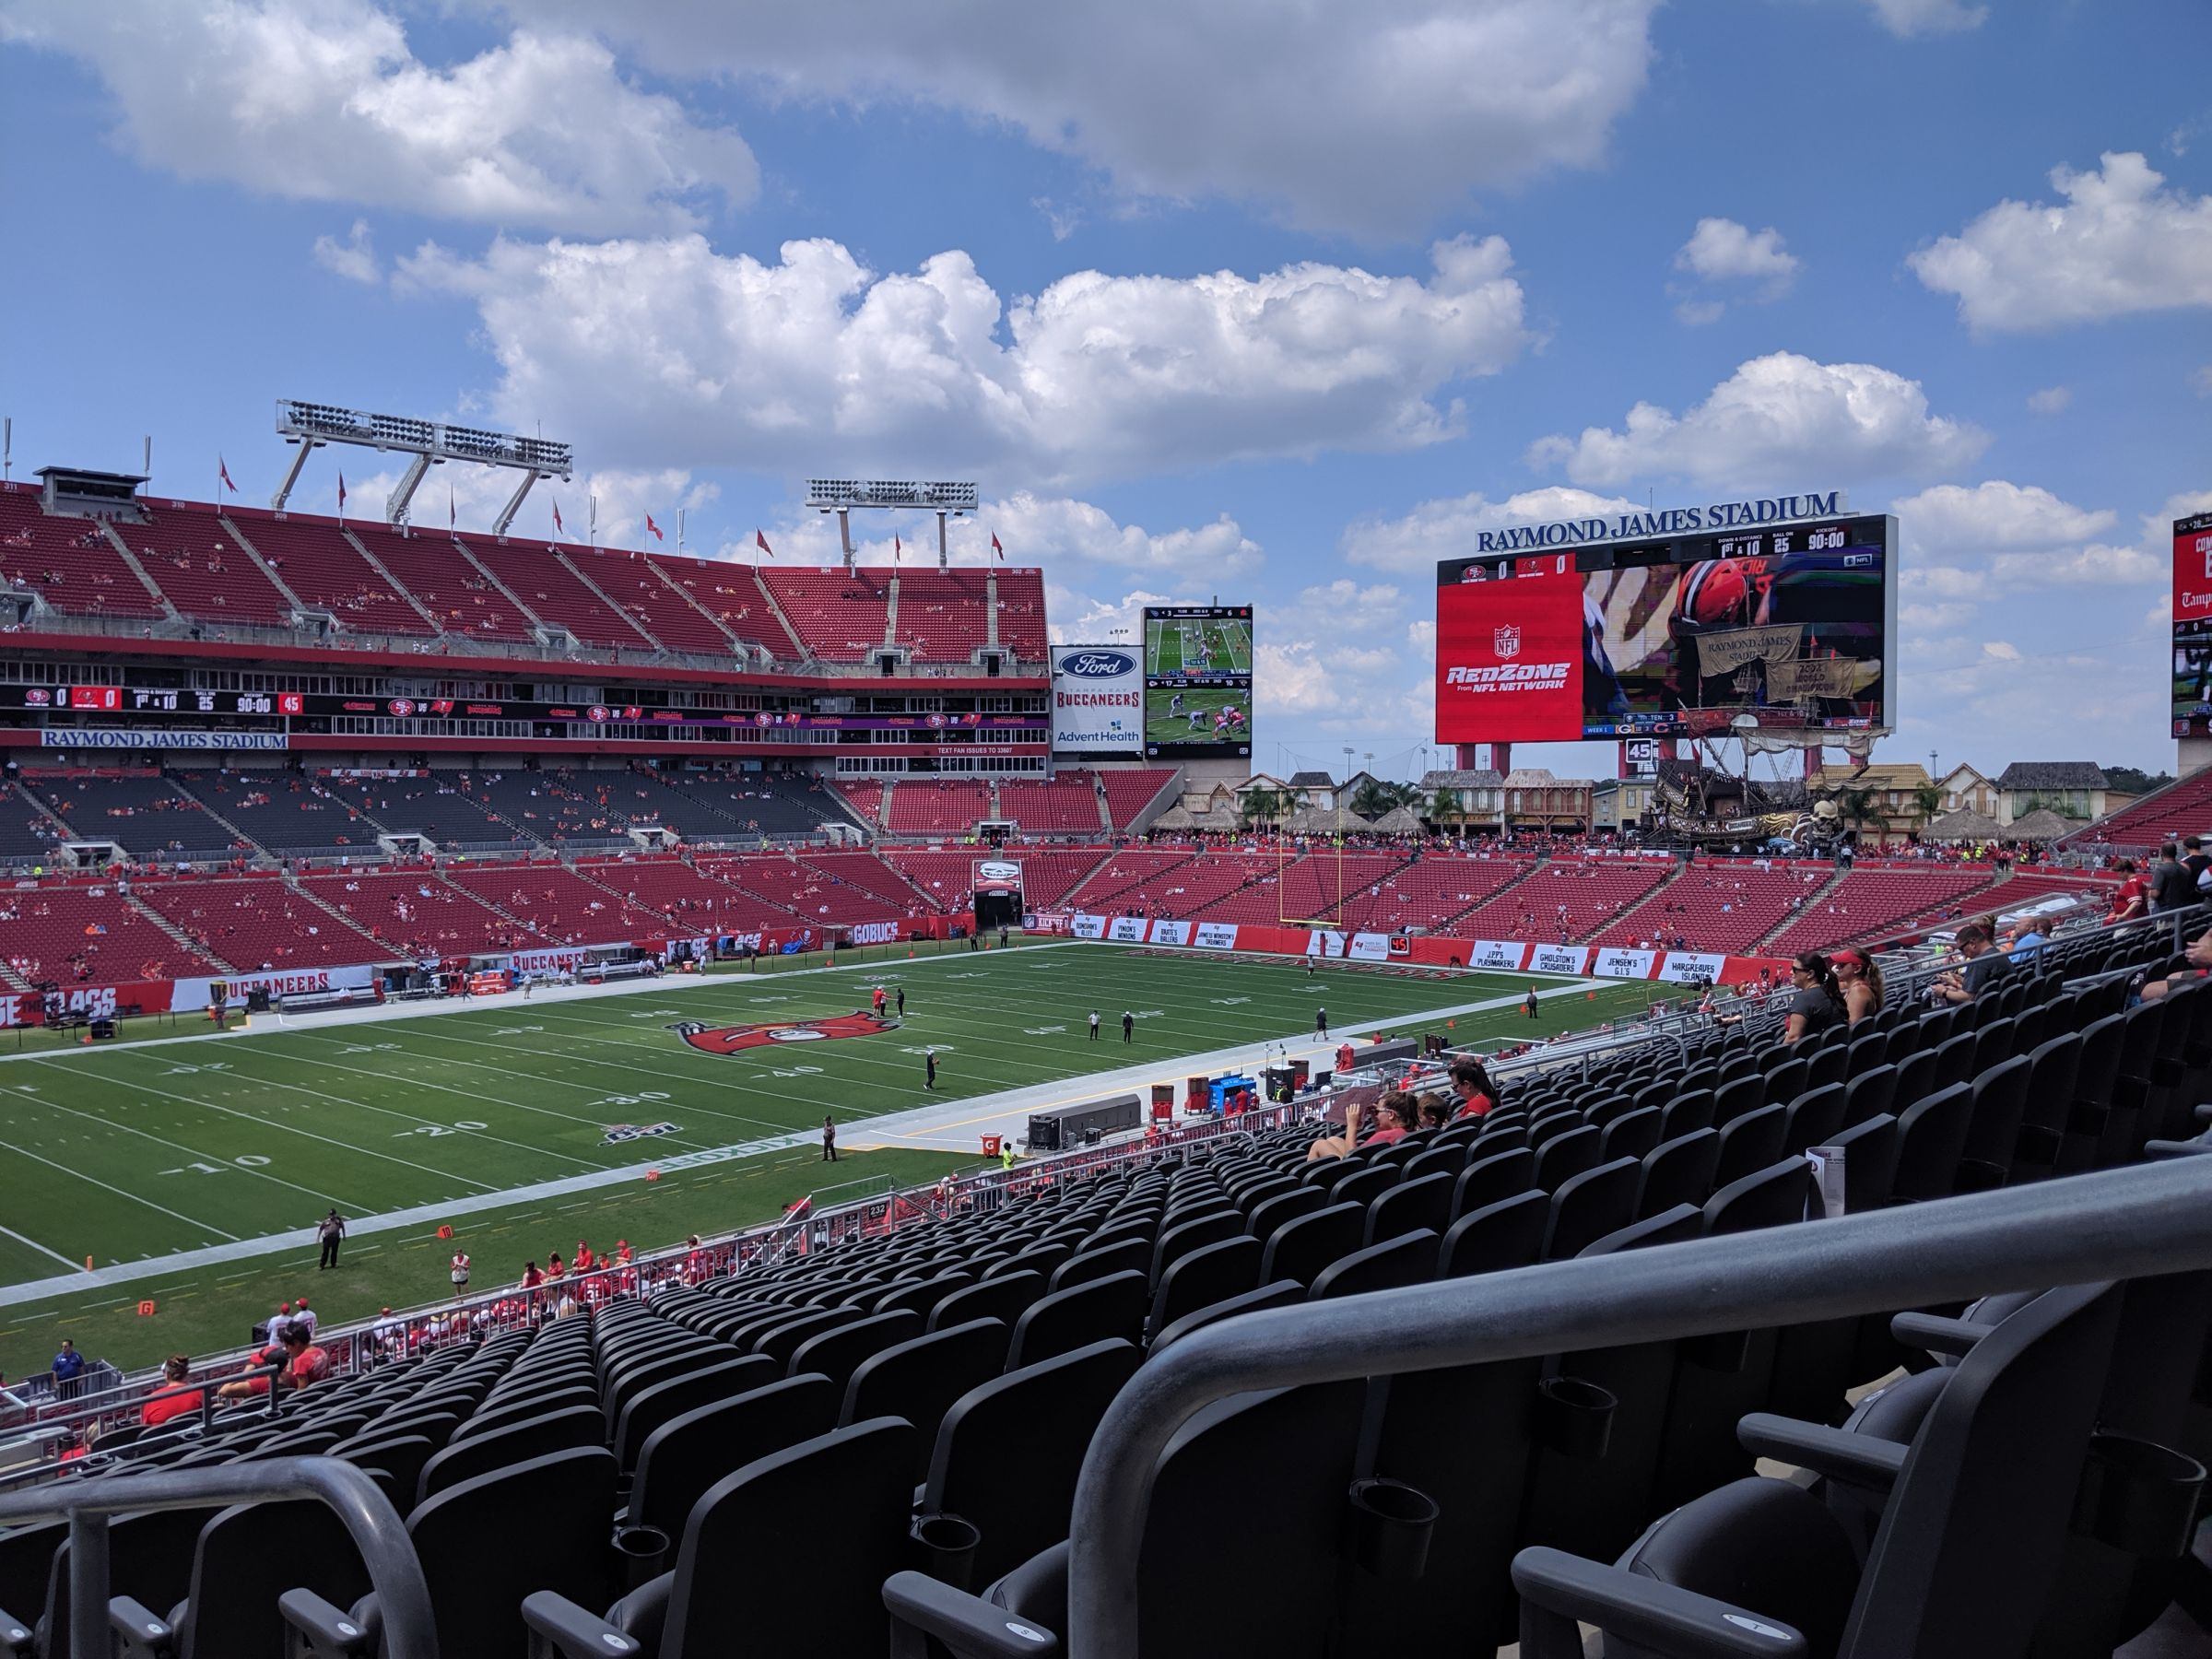 Section 230 seat view